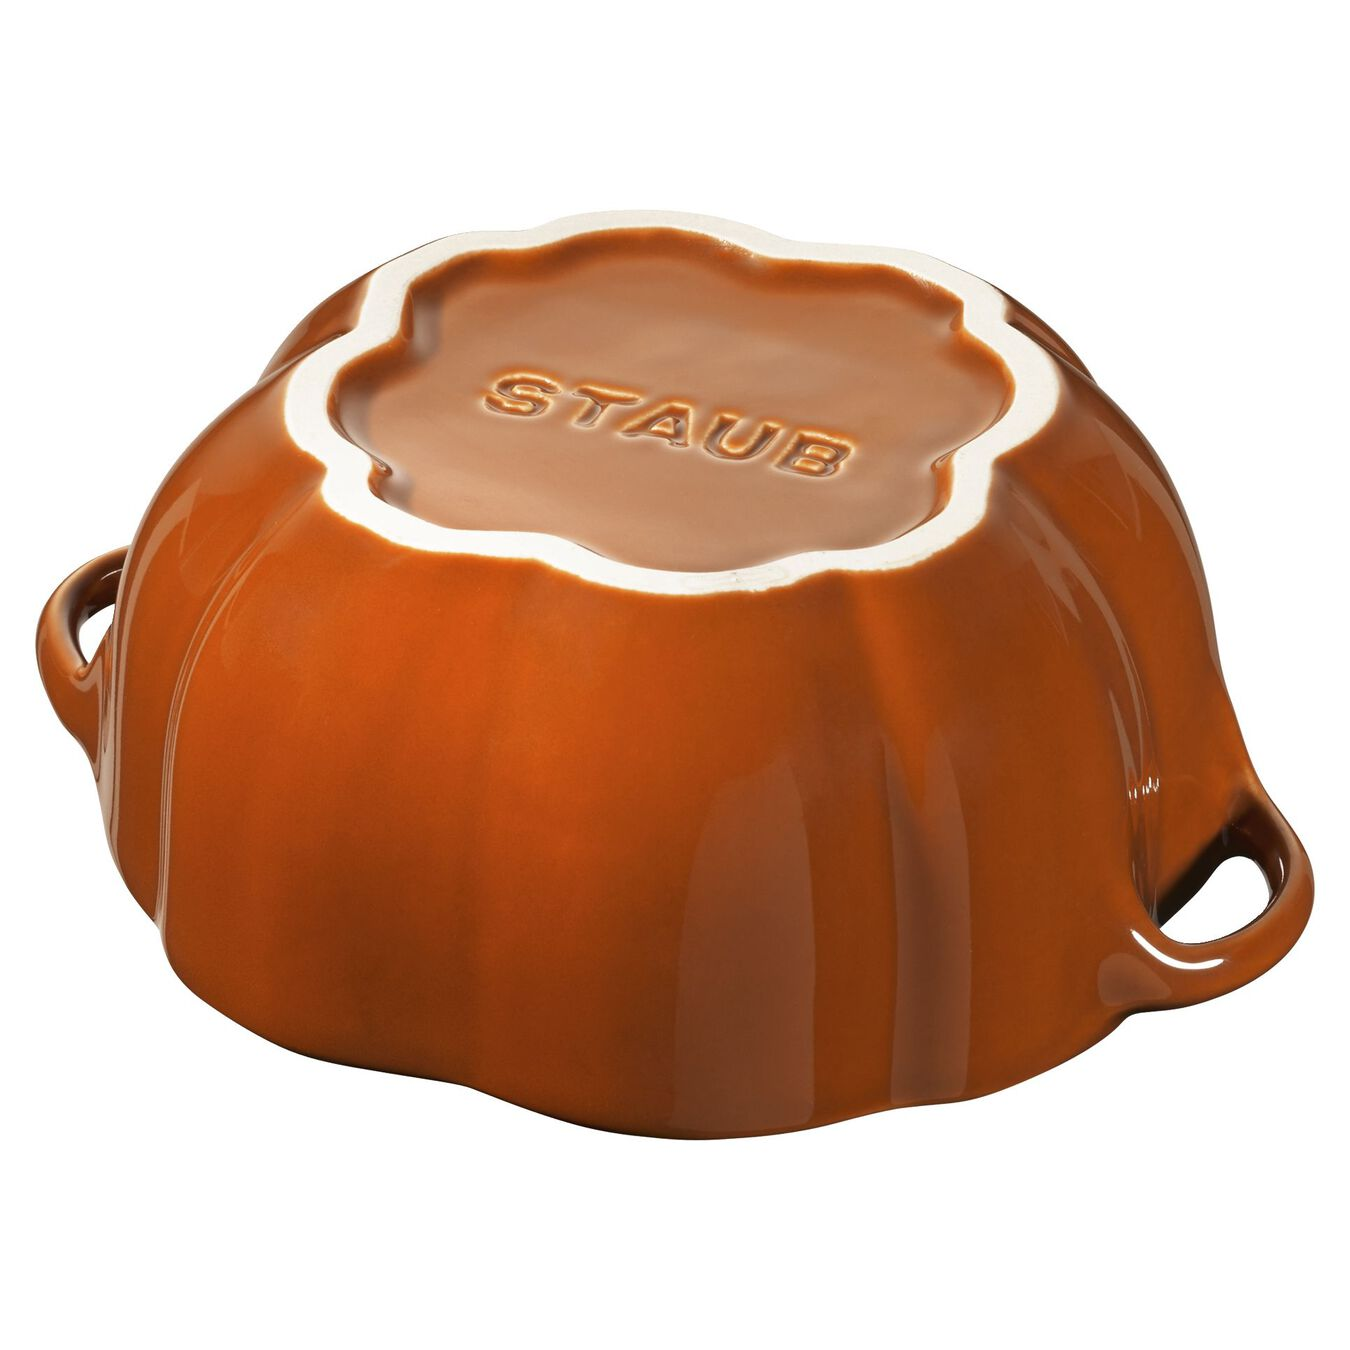 16-oz Petite Pumpkin Cocotte - Burnt Orange,,large 3